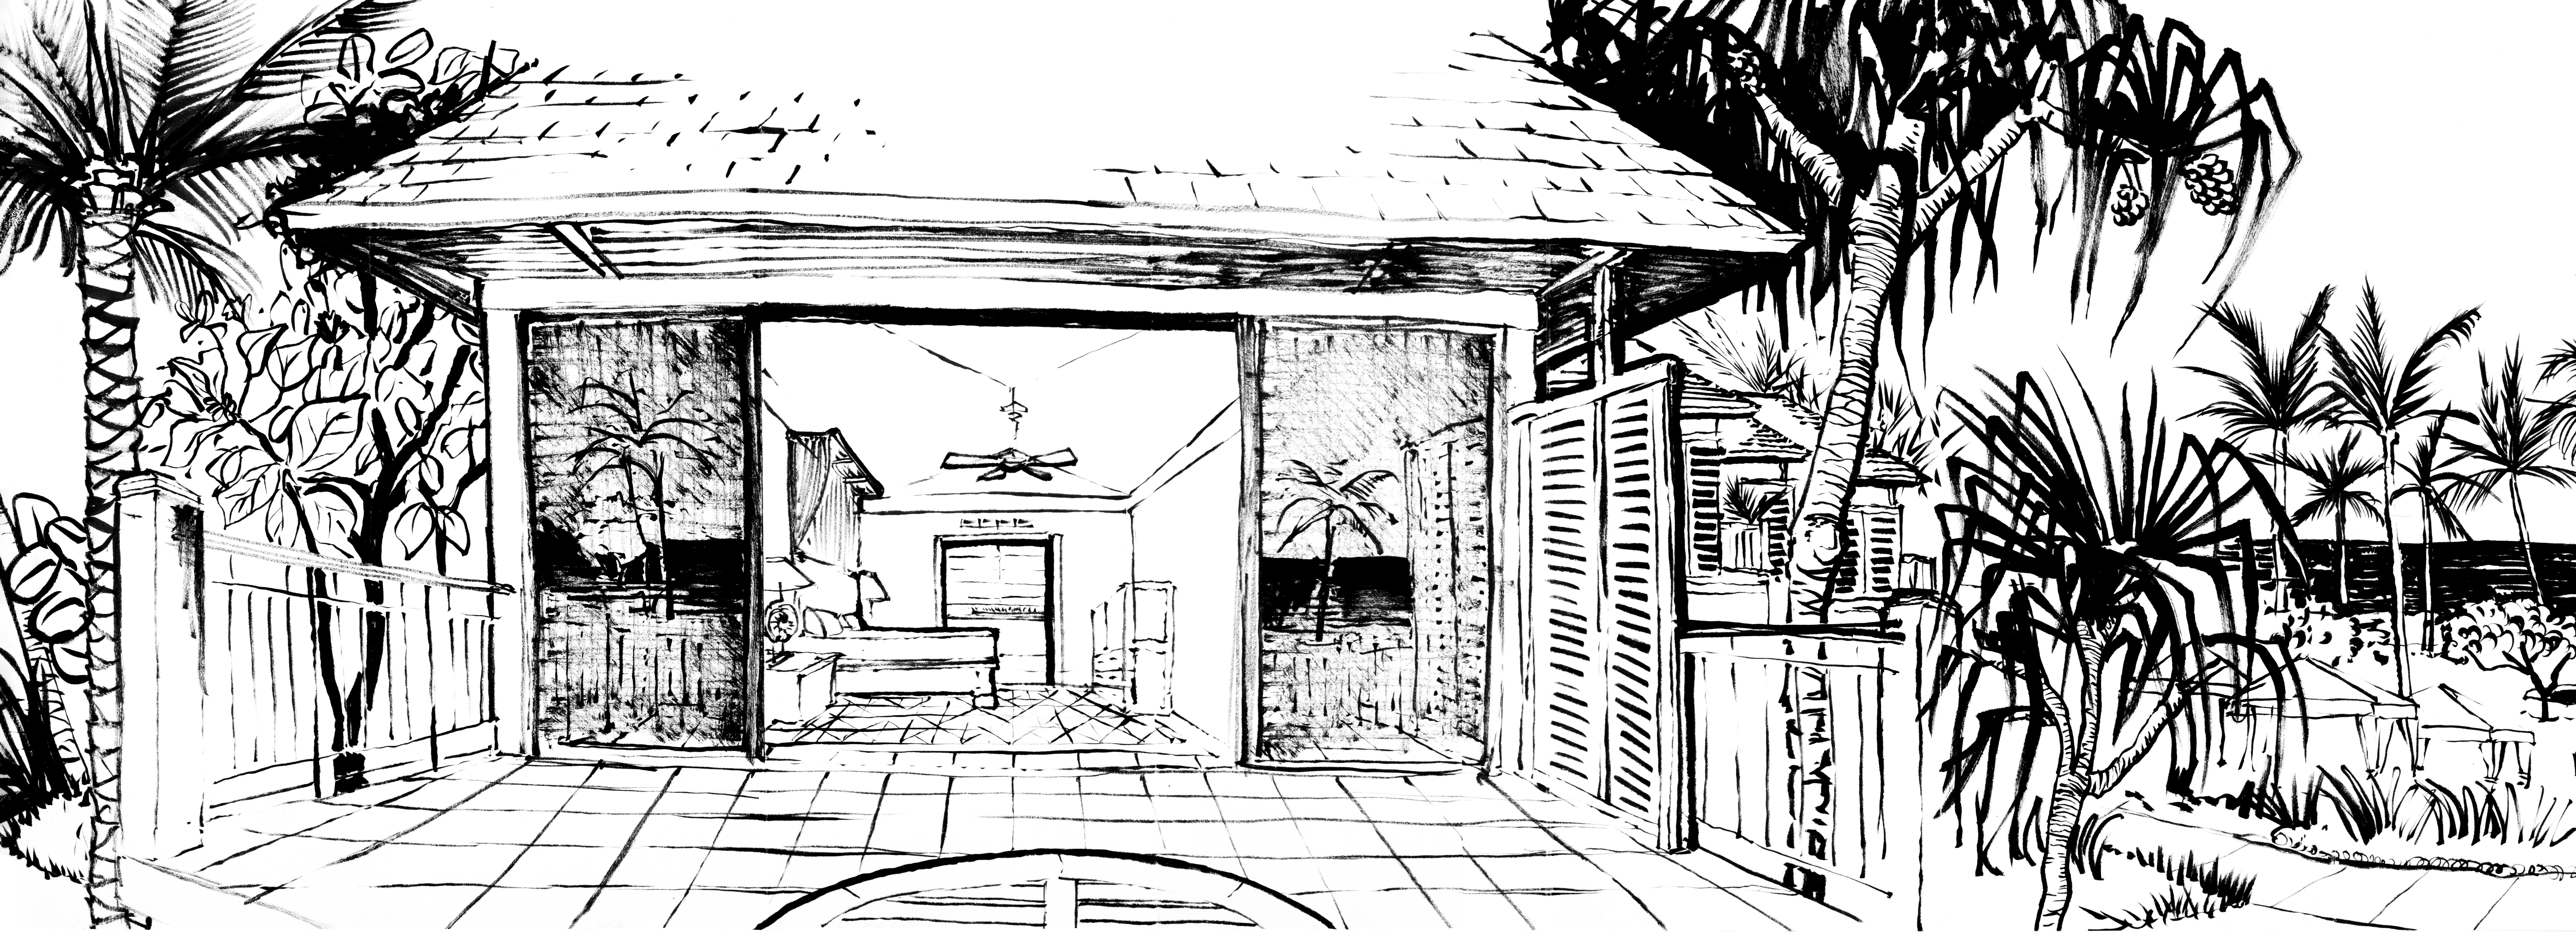 10.7-10.8 Hawaii bungalow design